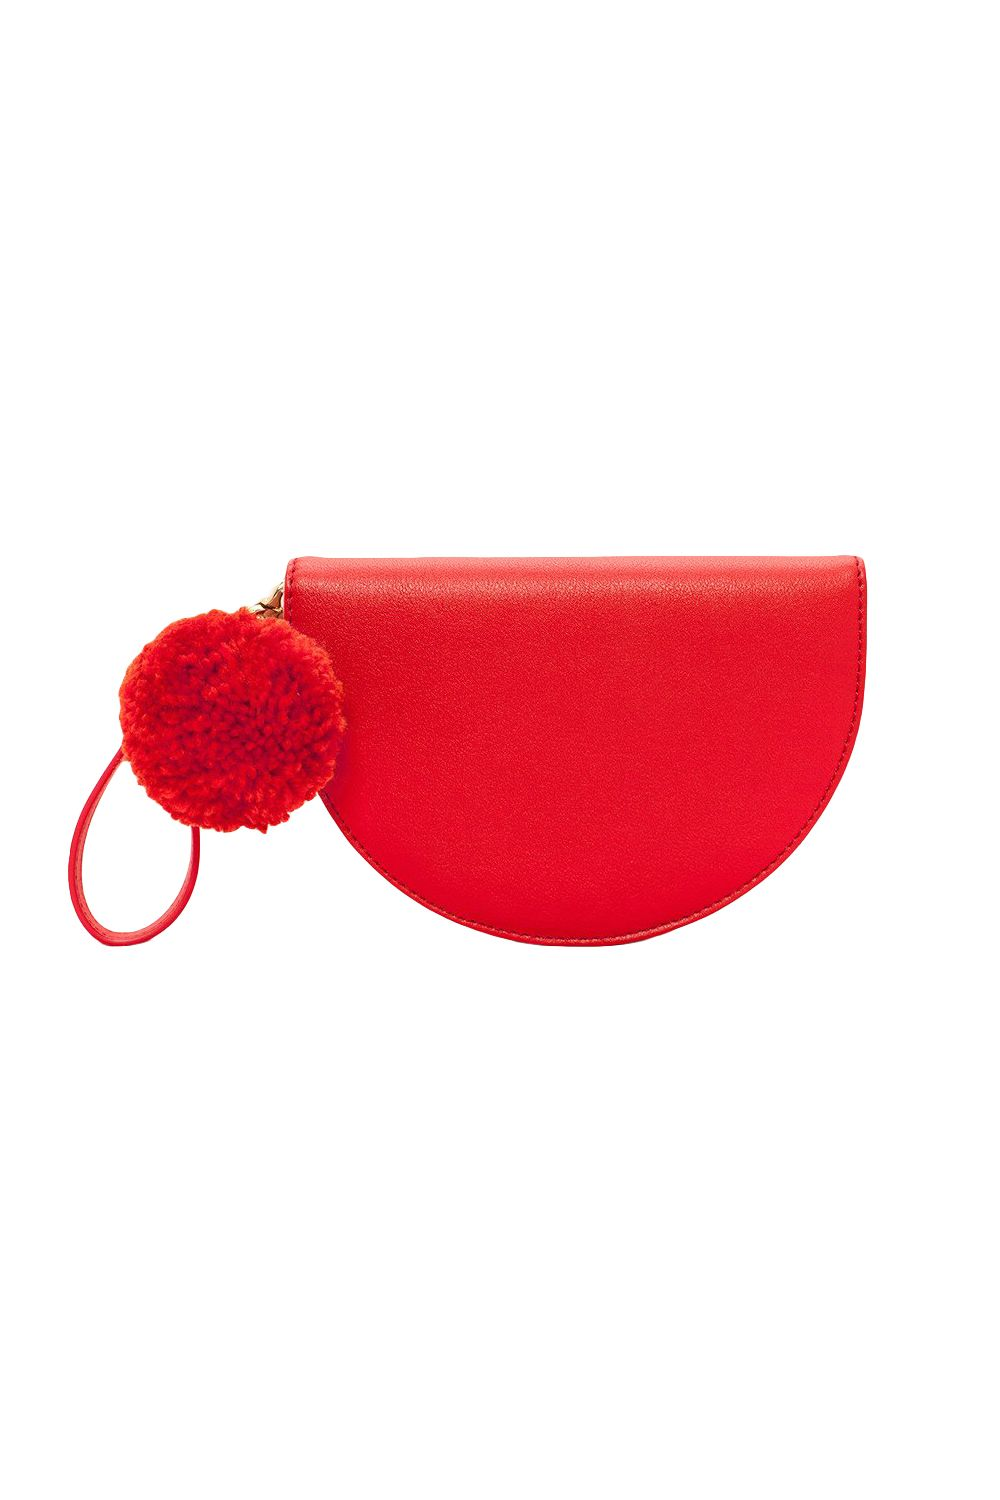 "<p>Buy another half-moon clutch&nbsp&#x3B;in pink so two halves can become a whole. Symbolic, no?&nbsp&#x3B;</p><p><strong data-redactor-tag=""strong"">BUY IT:&nbsp&#x3B;</strong><span class=""redactor-invisible-space"" data-verified=""redactor"" data-redactor-tag=""span"" data-redactor-class=""redactor-invisible-space""></span>Bando, $55&#x3B; <a href=""https://www.bando.com/collections/bff-bags/products/comrade-tech-wristlet-punch"" target=""_blank"" data-tracking-id=""recirc-text-link"">bando.com</a>.</p>"